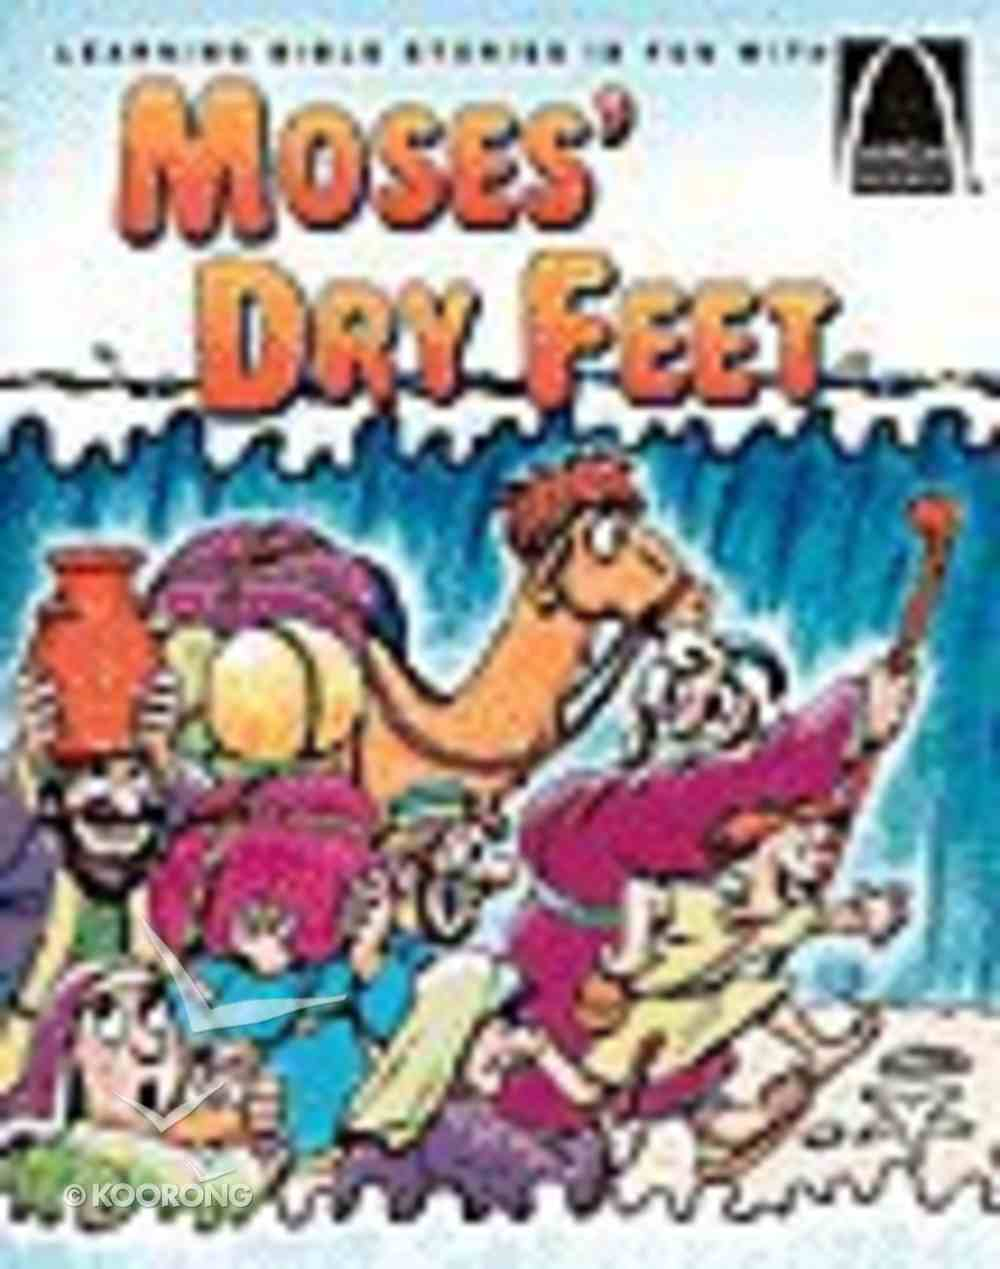 Moses' Dry Feet (Arch Books Series) Paperback